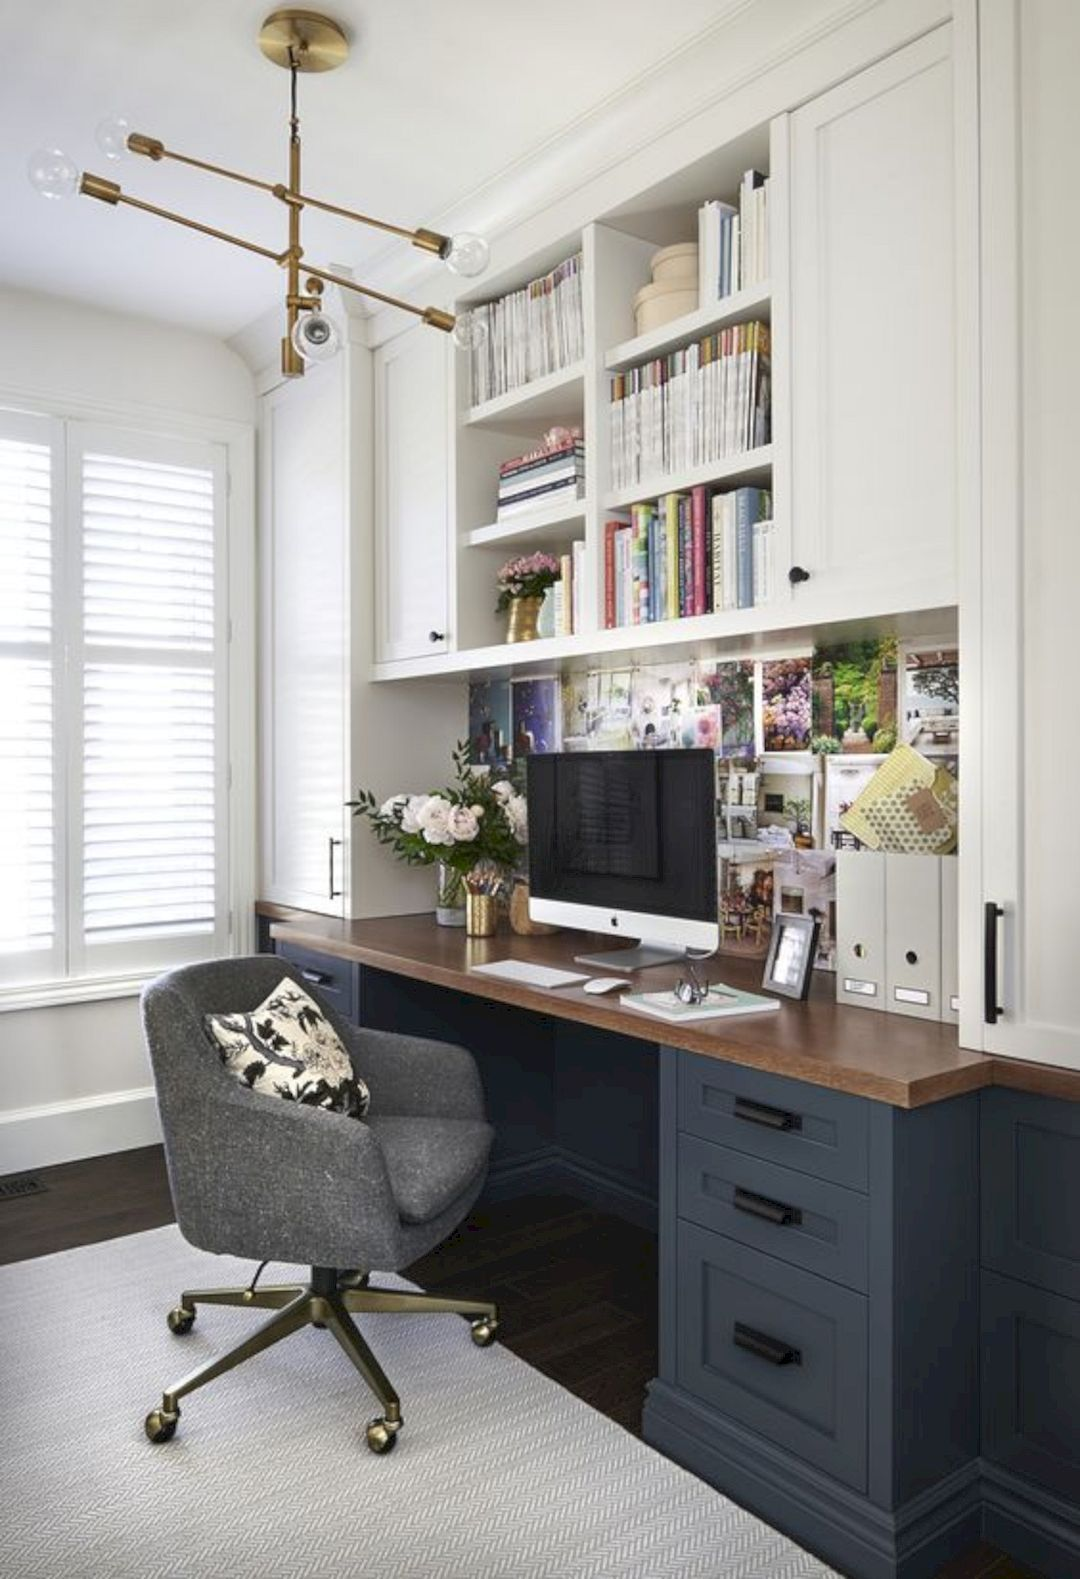 21 Modern Home Office Furniture Ideas Home Office Space Home Office Decor Home Office Design